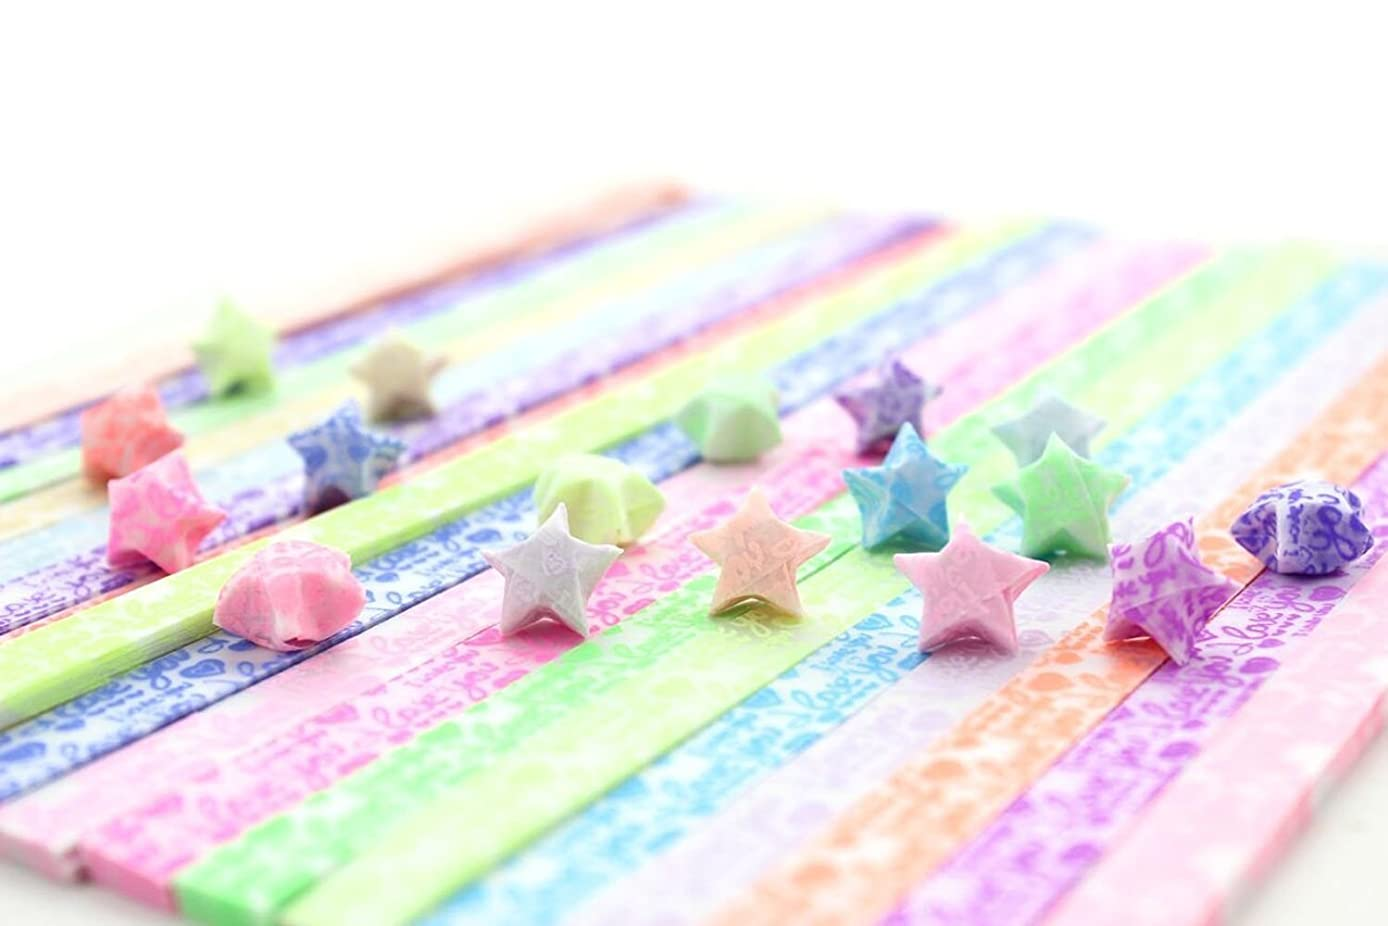 yueton 300 Sheets Glows in The Dark Stars Folding Paper - Lucky Wish Star Origami Paper - 10 Different Colors by Random